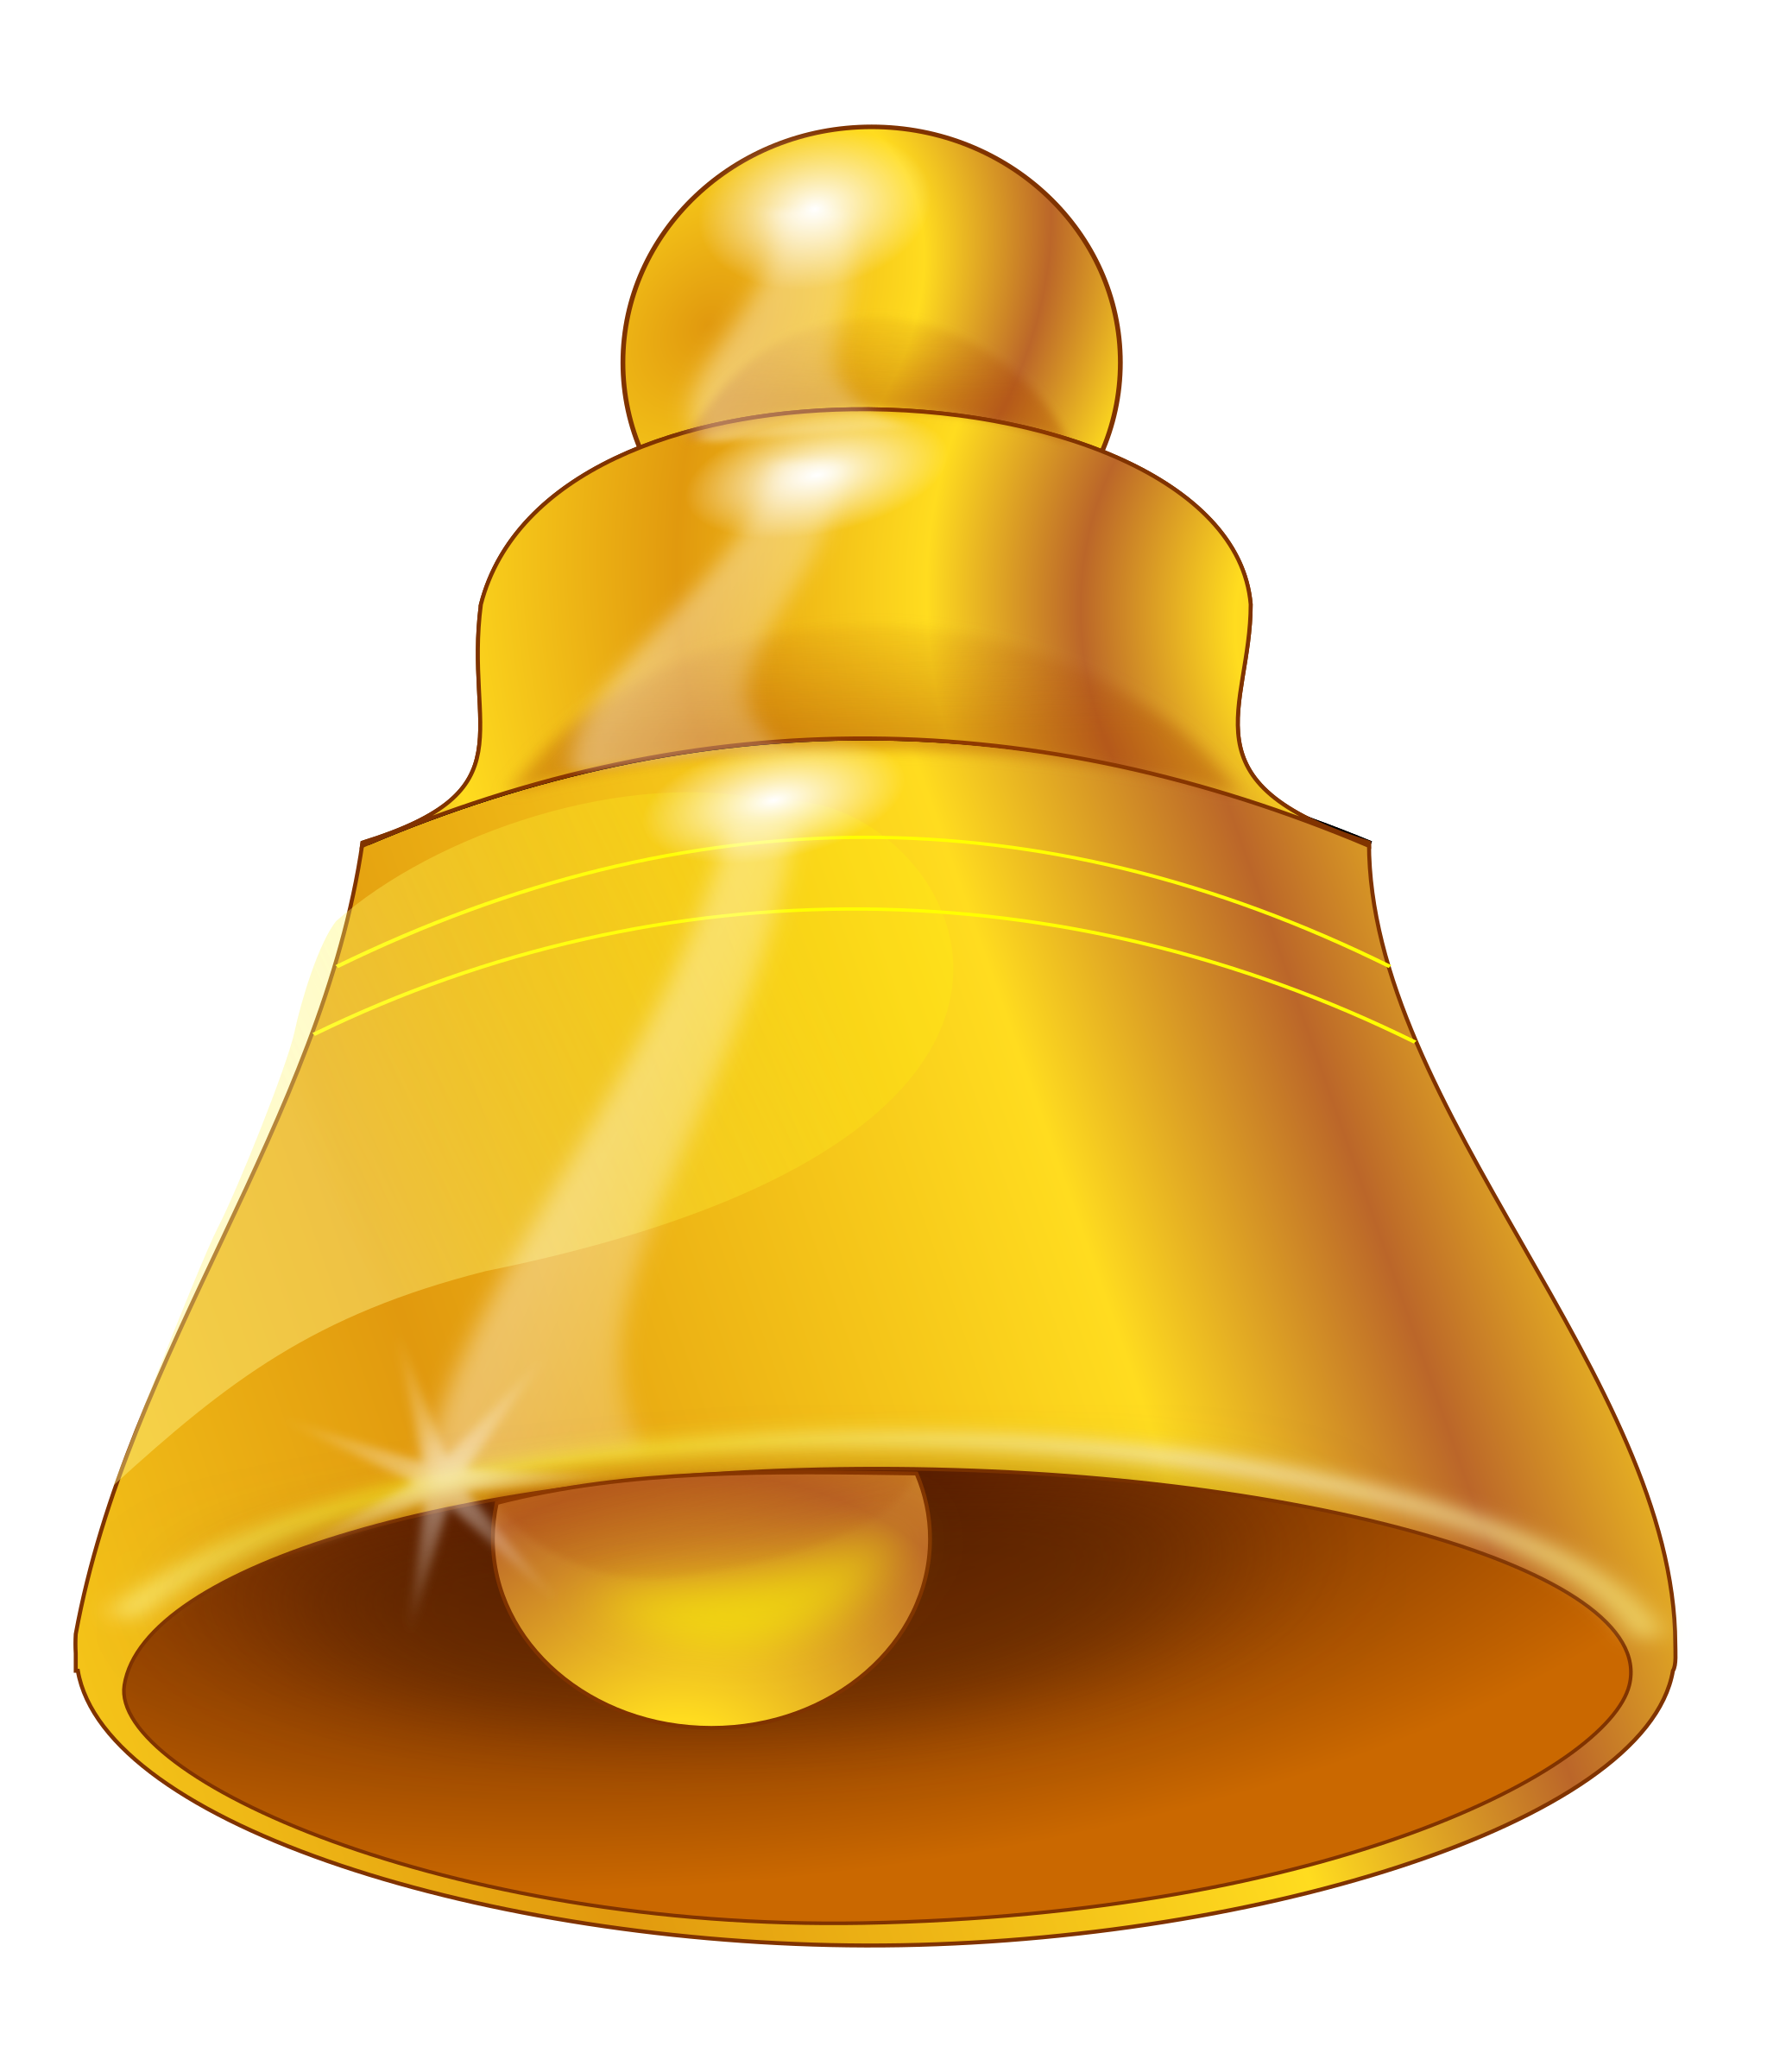 Bell png. Images free download